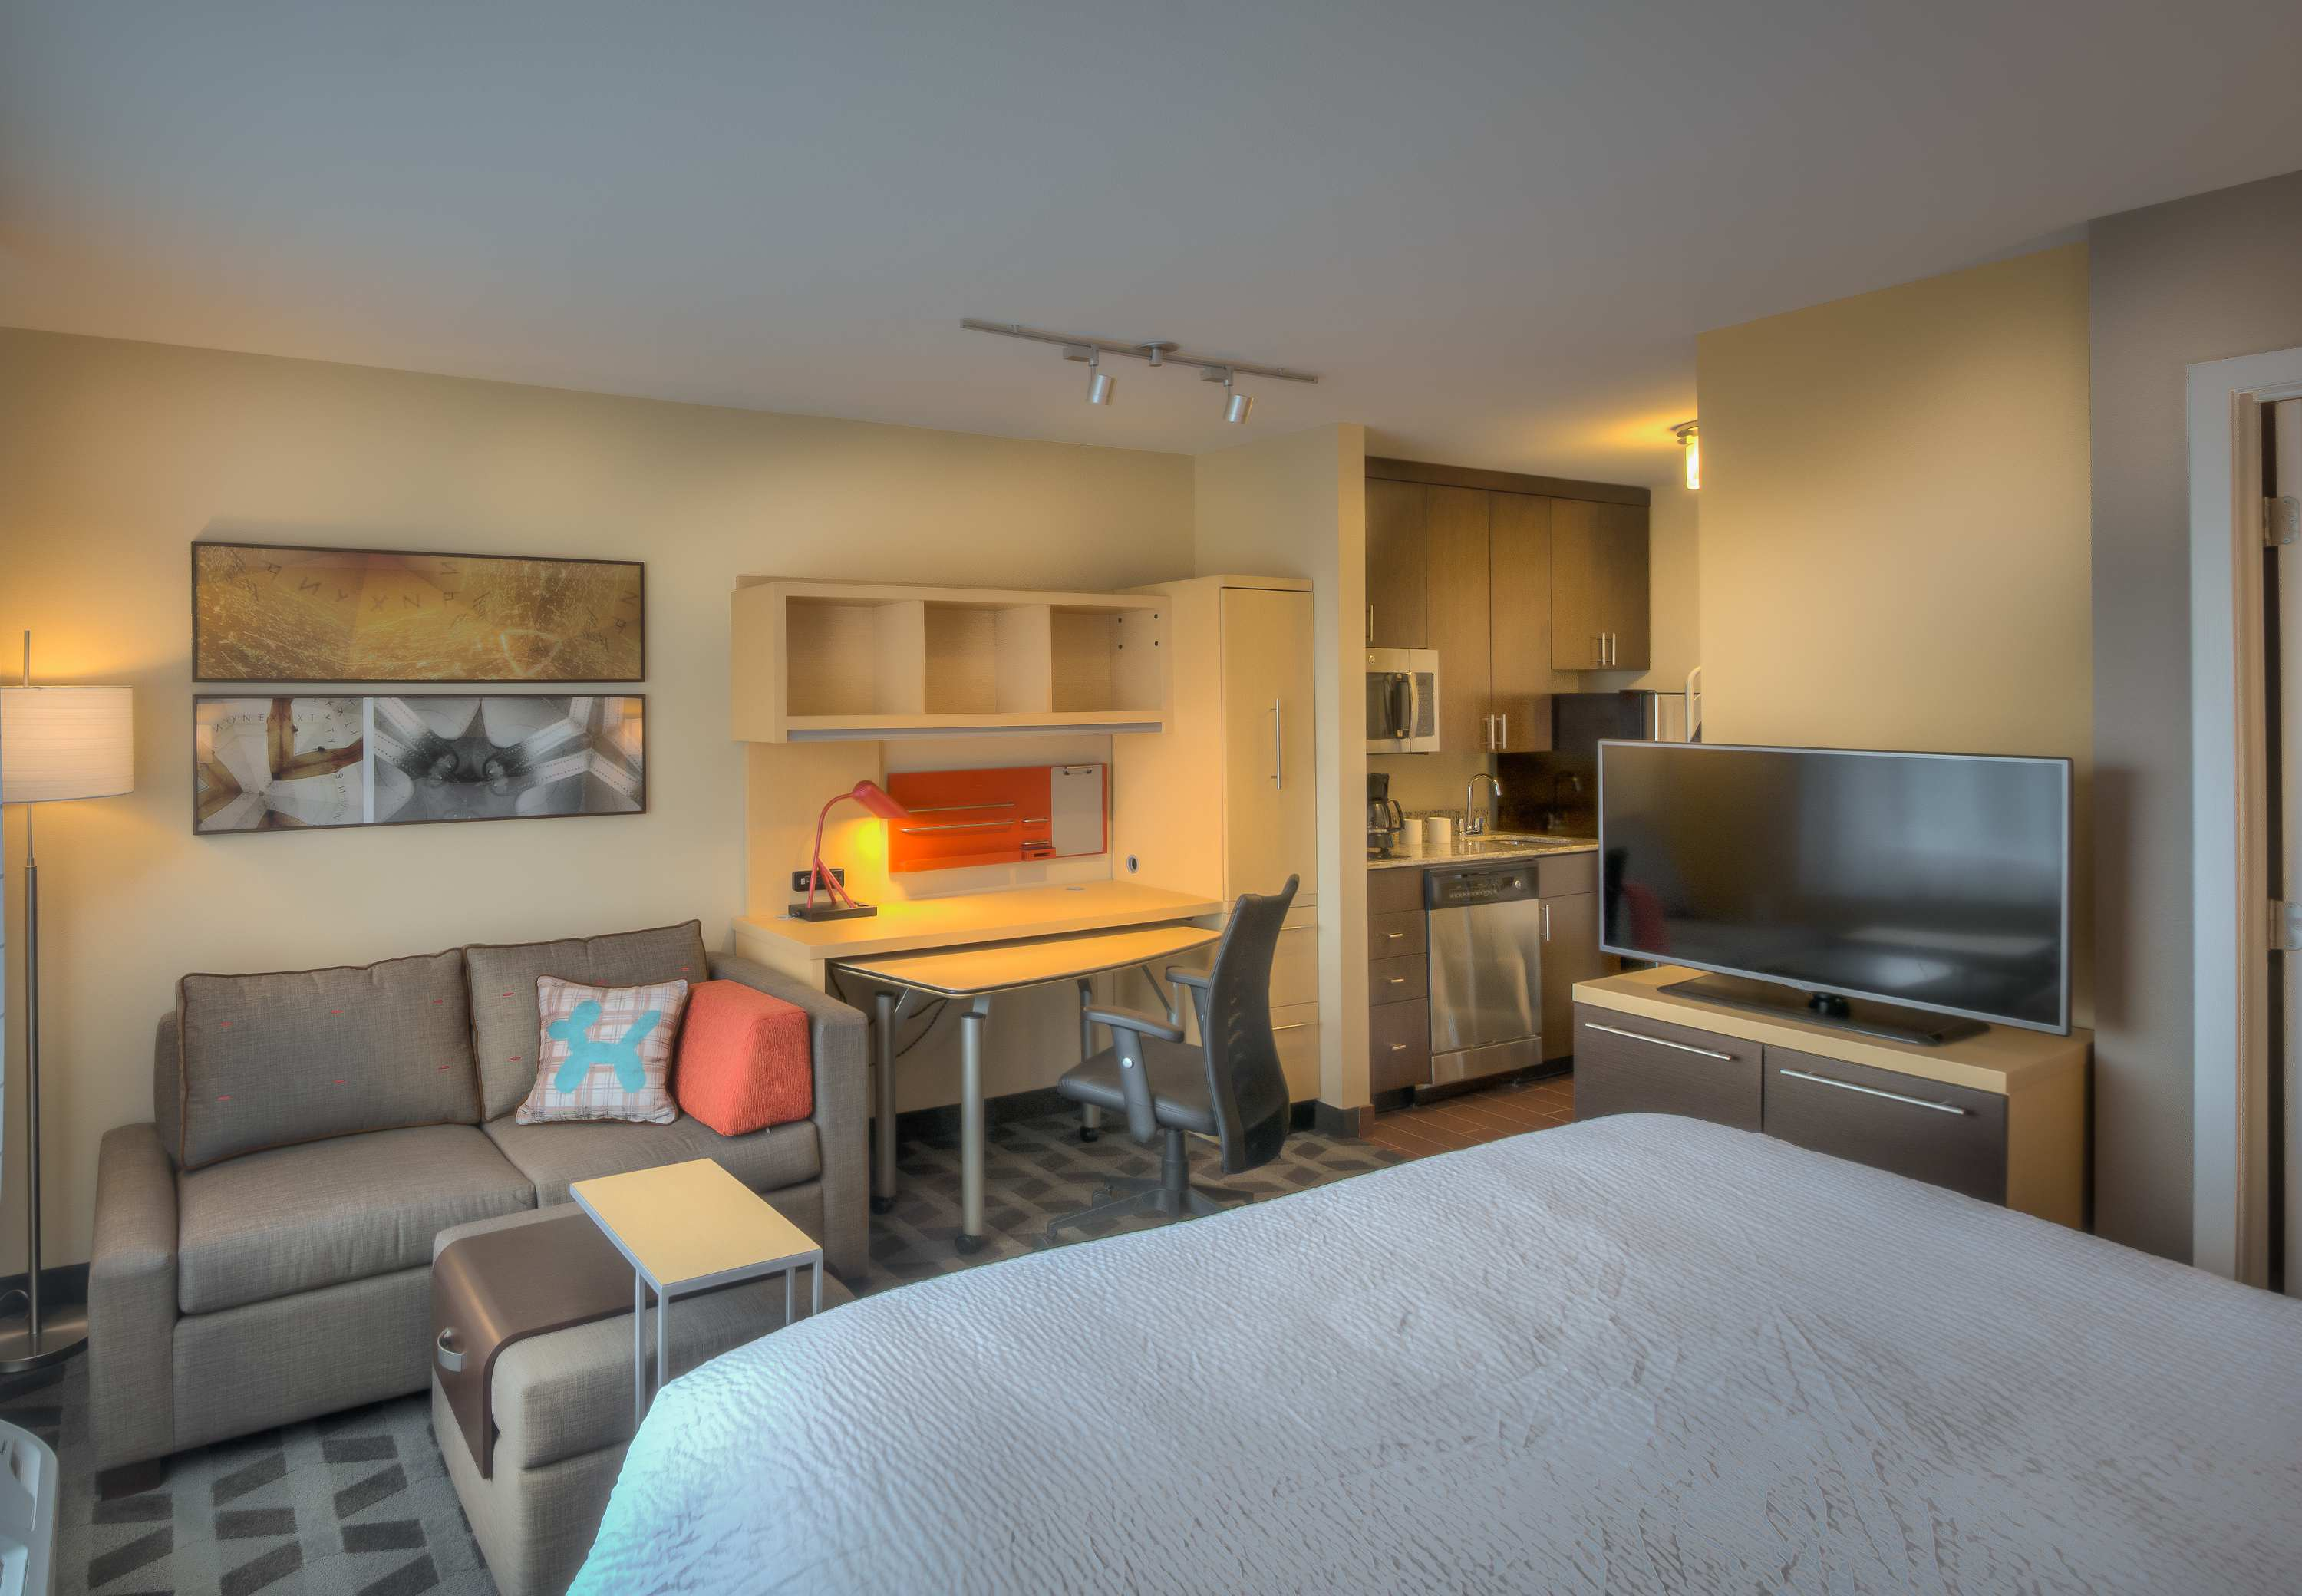 TownePlace Suites by Marriott Goldsboro image 4